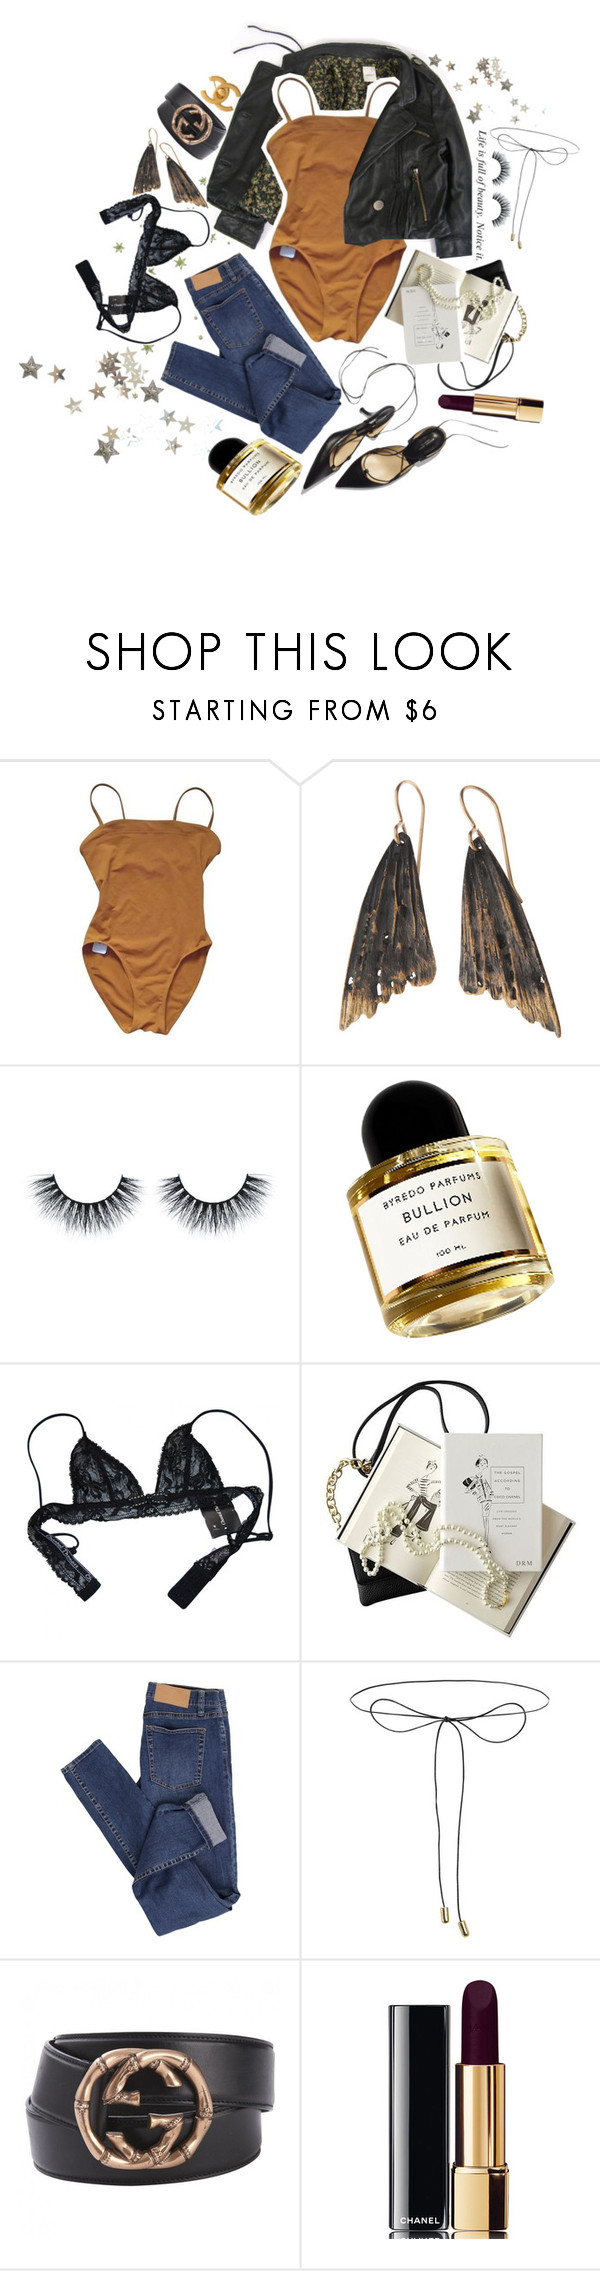 """Comfortable Silence is so Overrated"" by immi-bowyer ❤ liked on Polyvore featuring Eres, AURUM by Guðbjörg, Byredo, Chantal Thomass, Chanel, Cheap Monday, Lilou and Gucci"